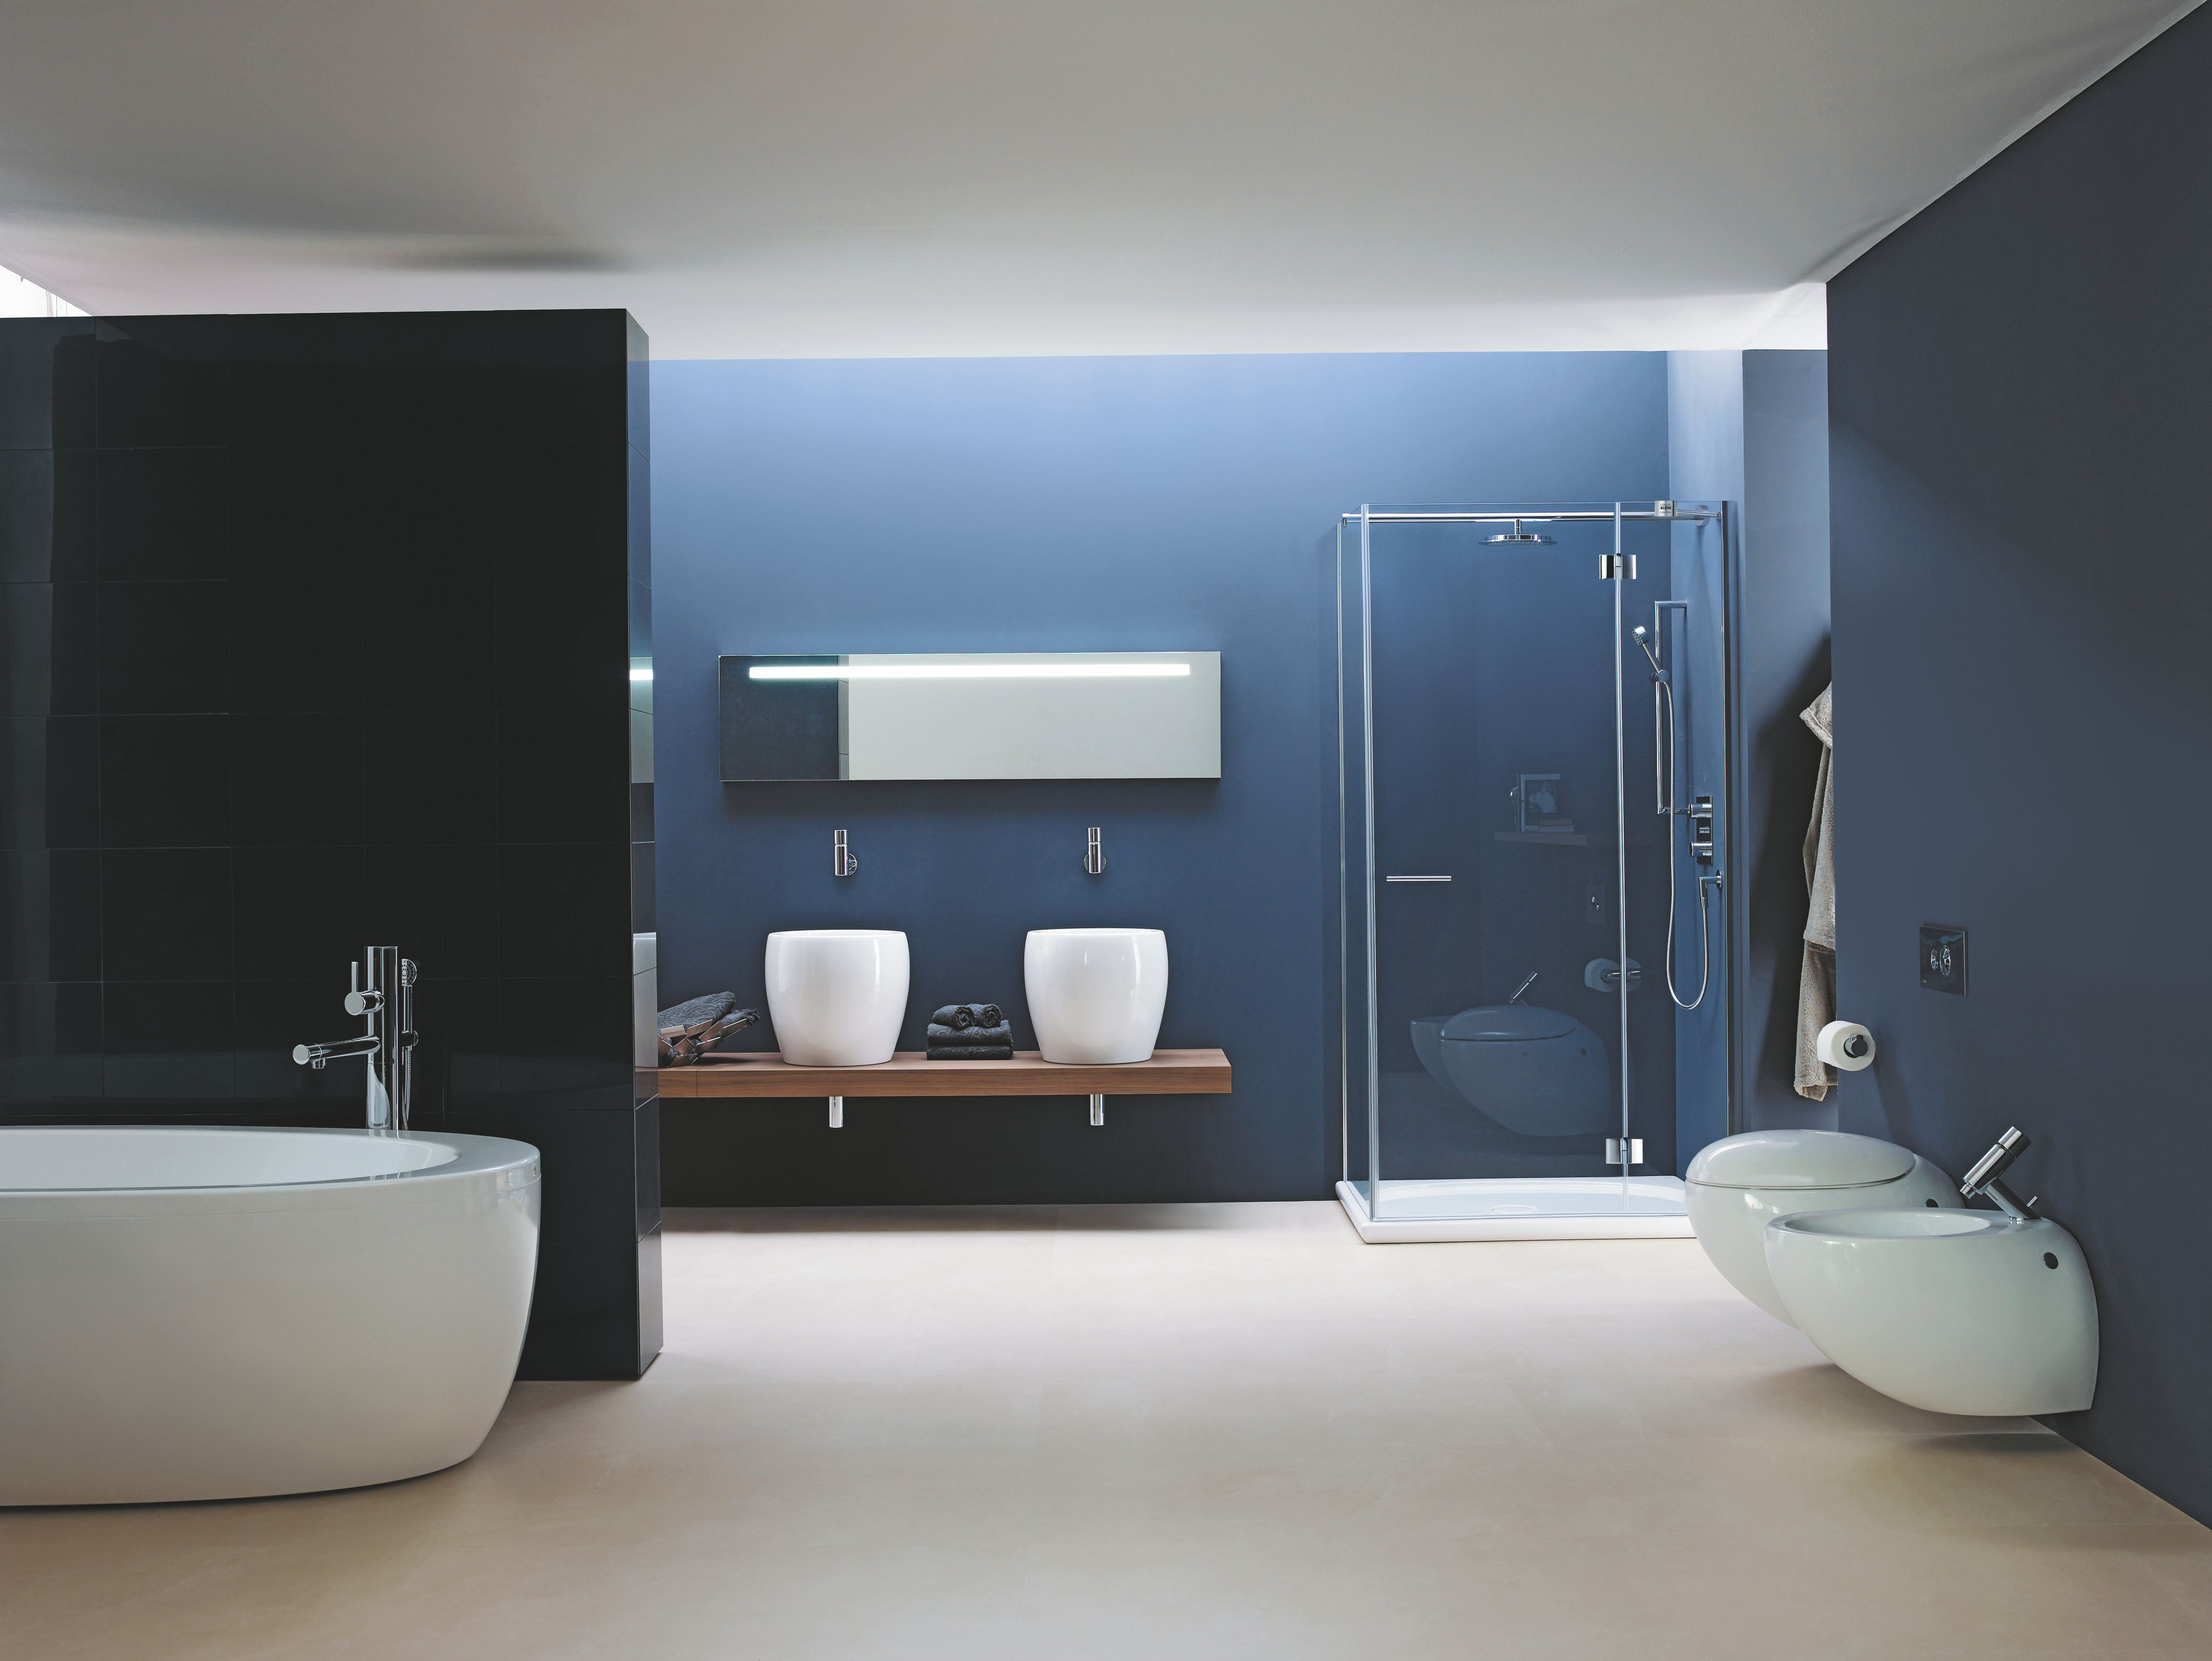 Bathroom : Black And Blue Toned Bathroom With Solid Floor And White ...